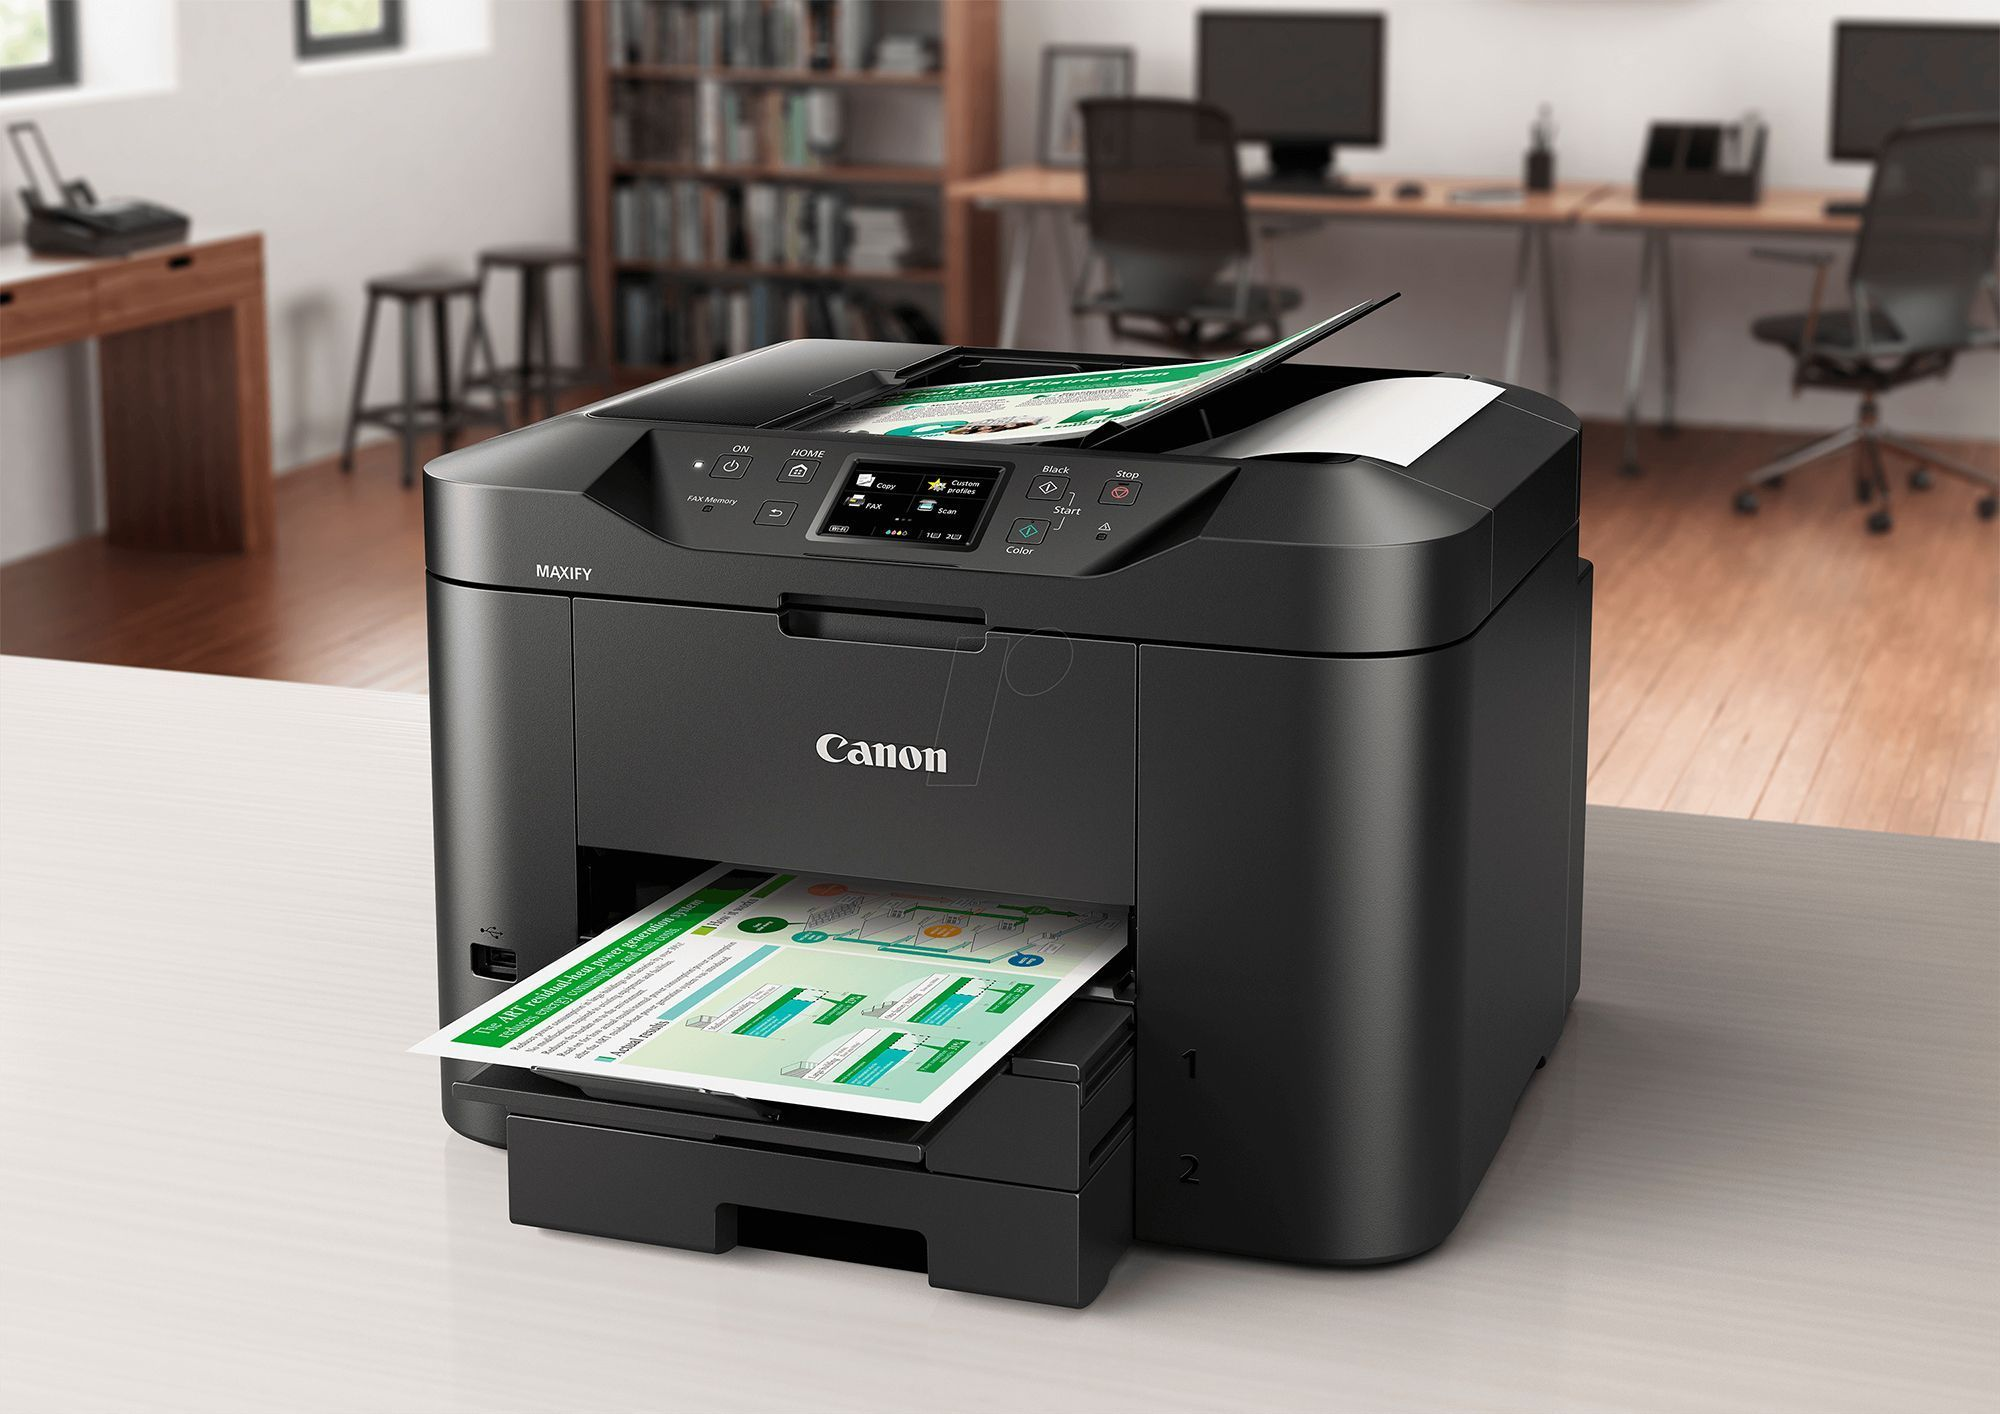 Check Out The Best Low Cost Printers For Your Home Office